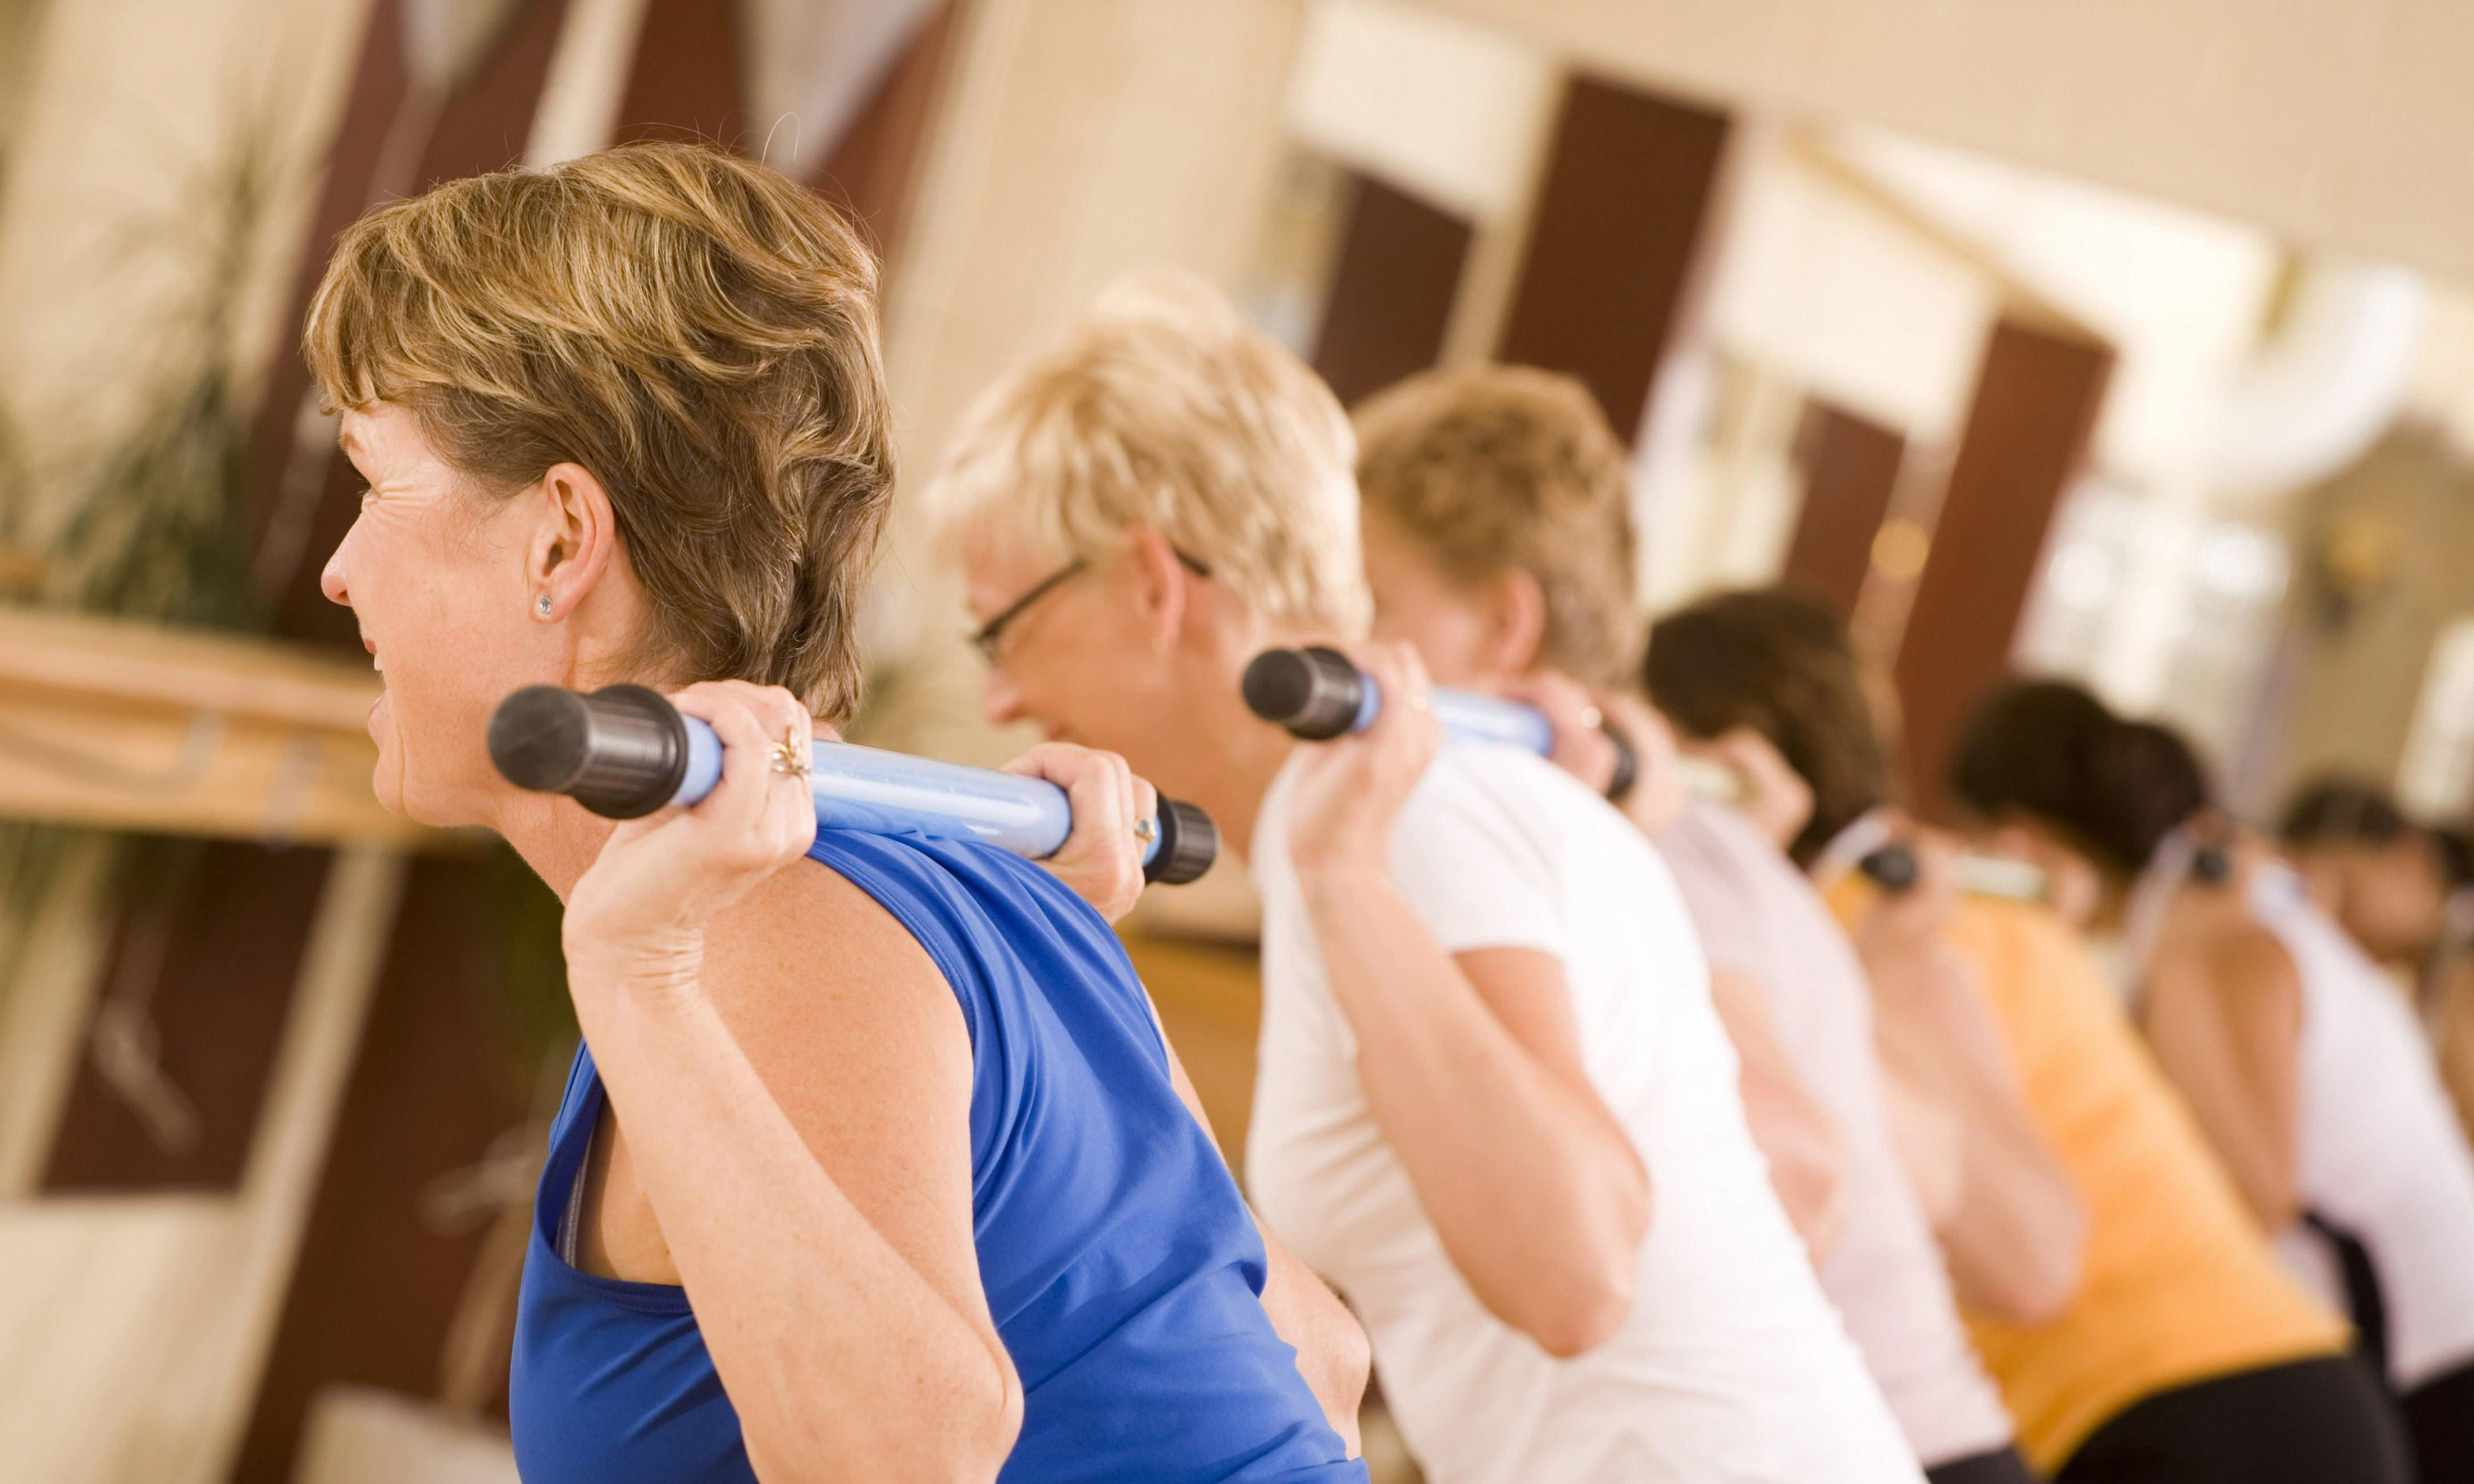 Getting fit in middle age as beneficial as starting early – study